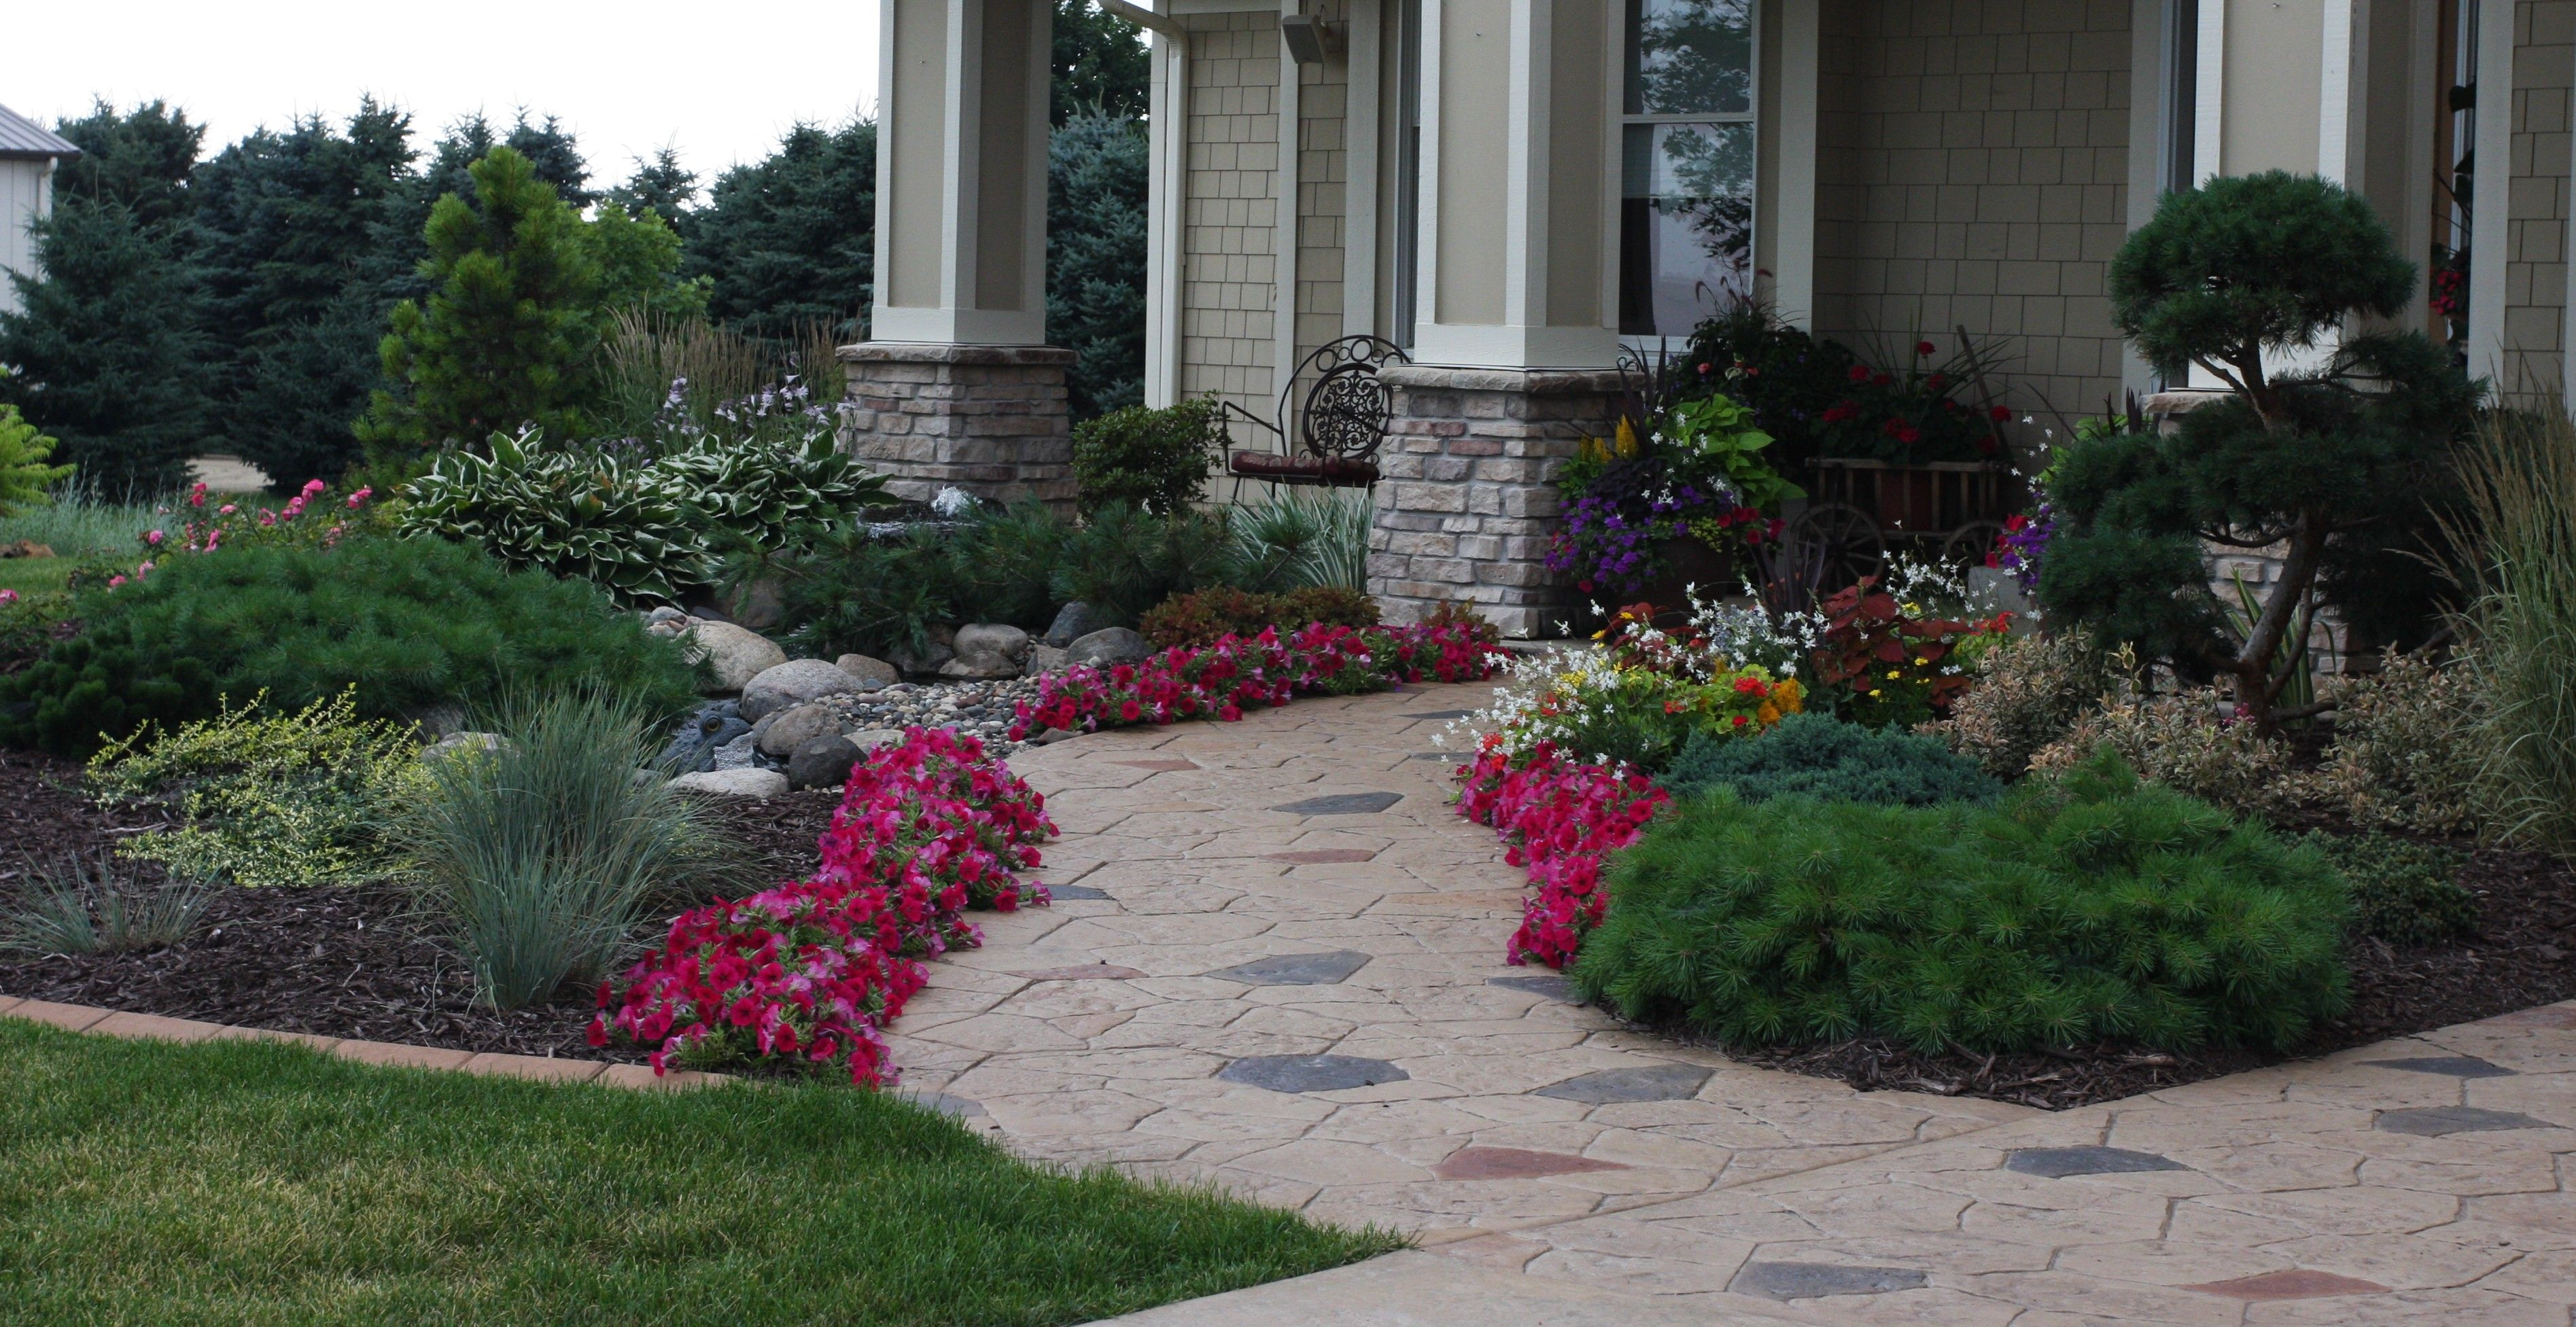 Landscape budgeting pahl 39 s market apple valley mn for Garden entrance ideas